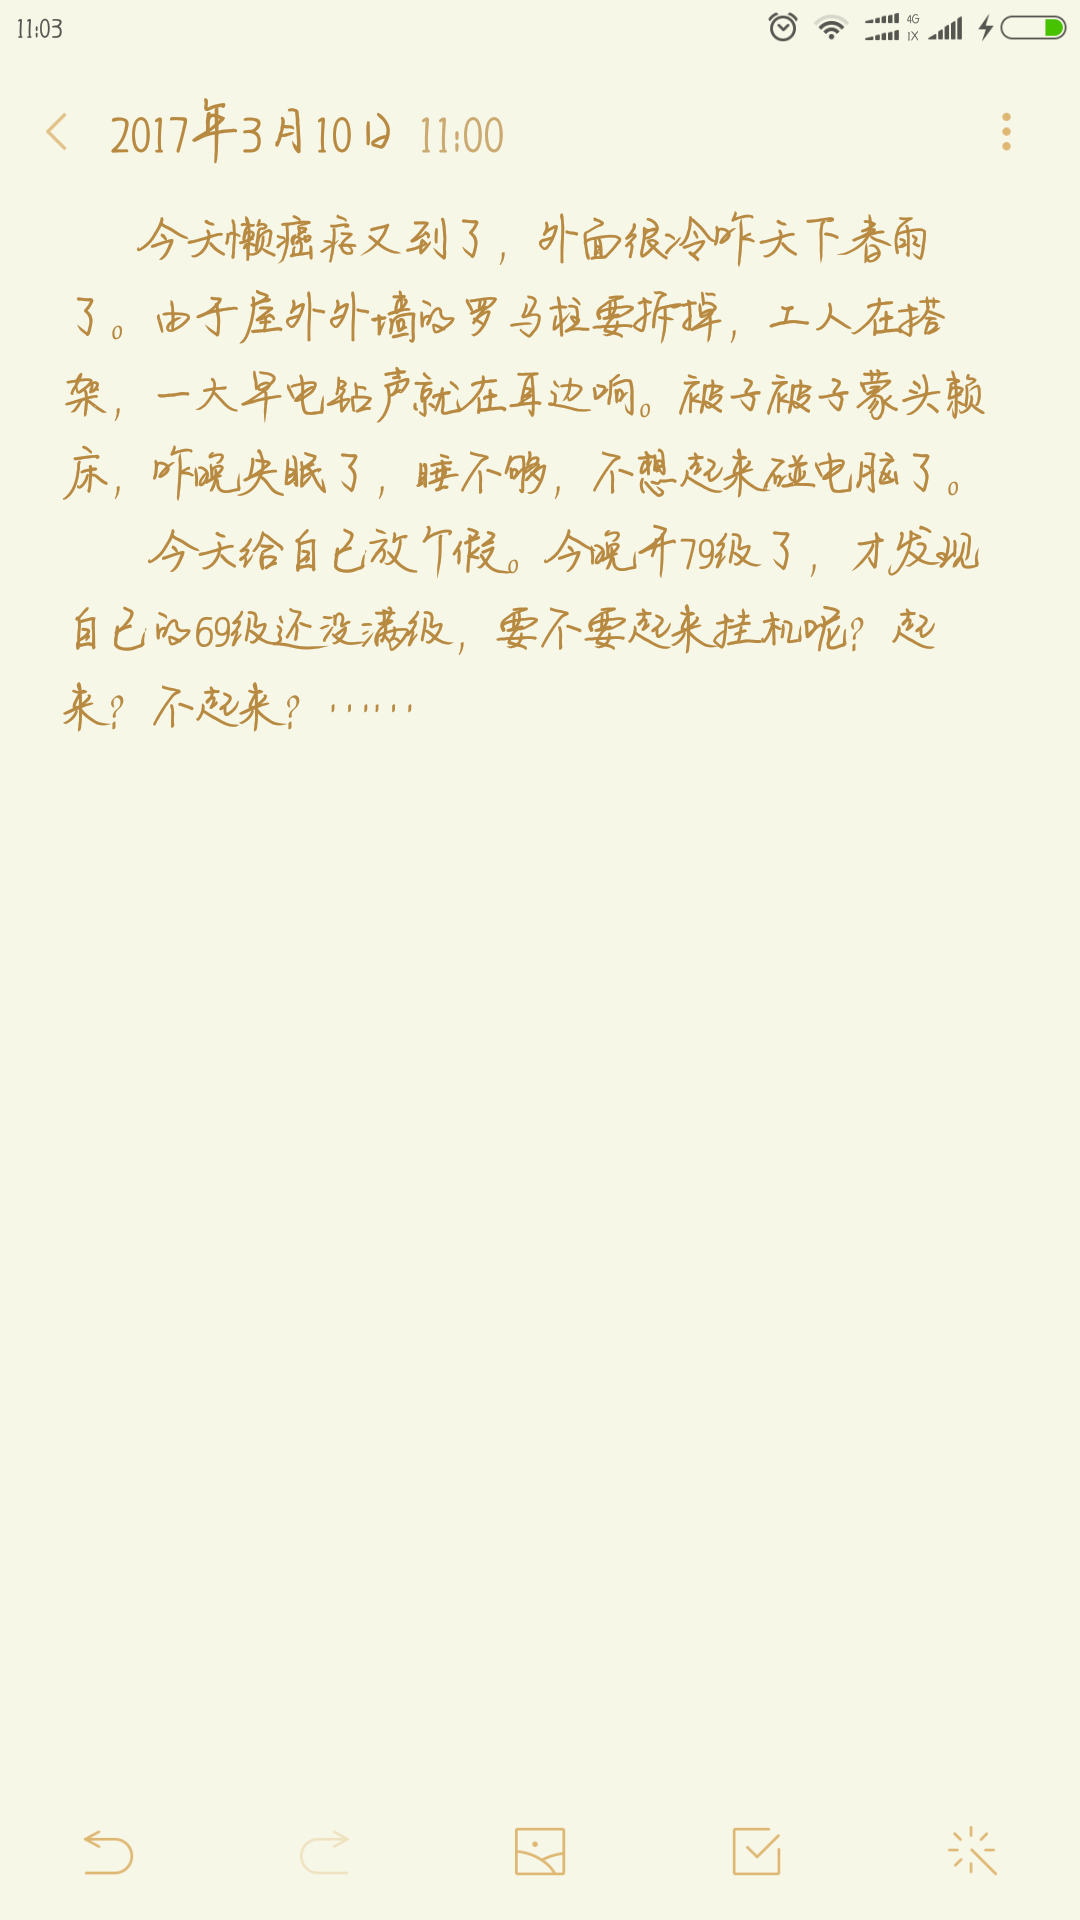 Screenshot_2017-03-10-11-03-45-512_com.miui.notes.png